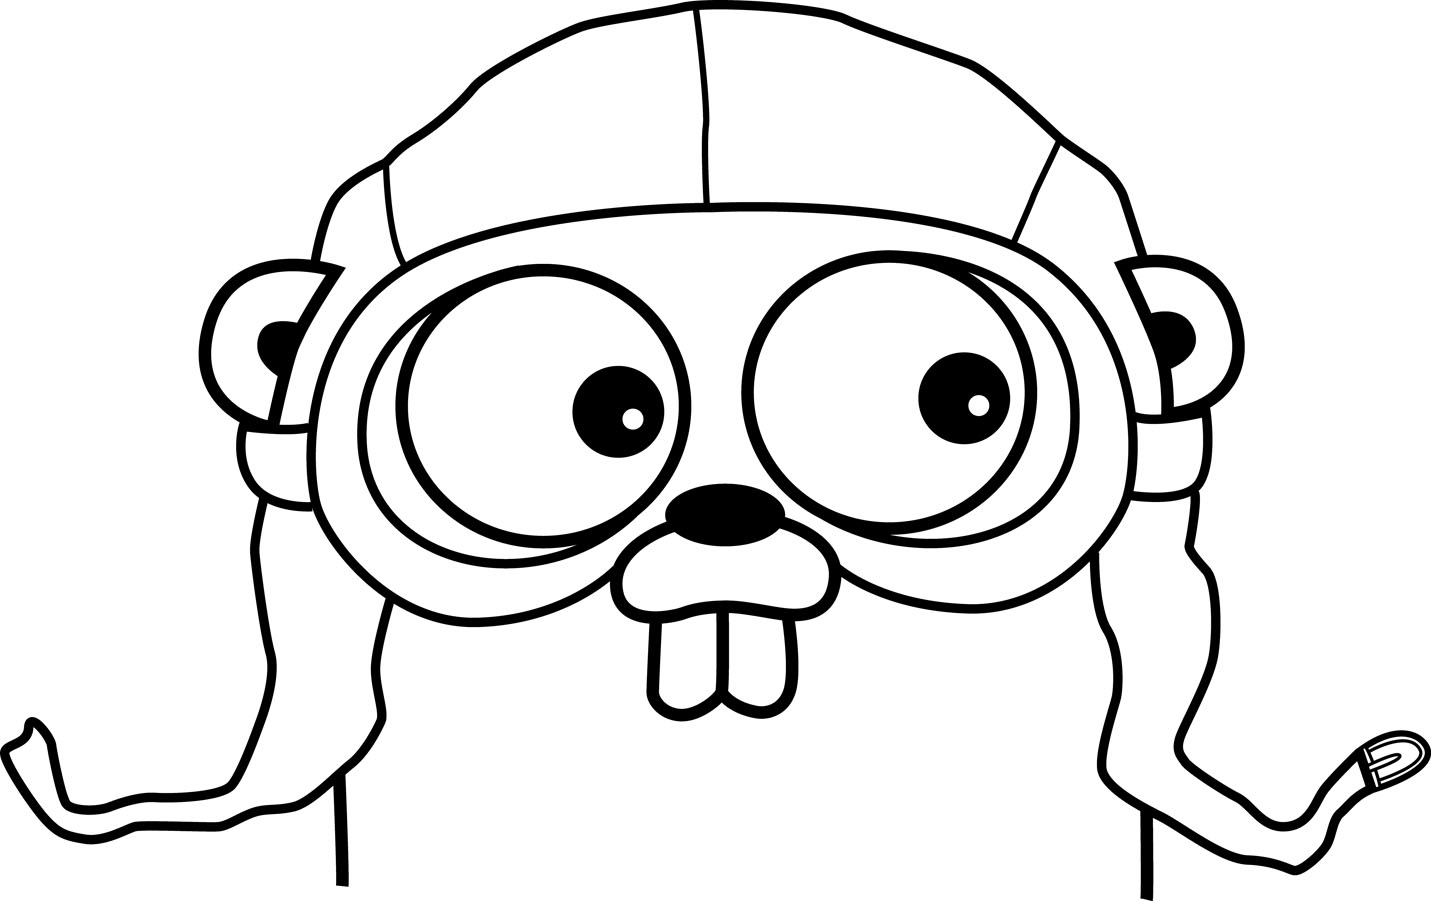 Ten Useful Techniques in Go